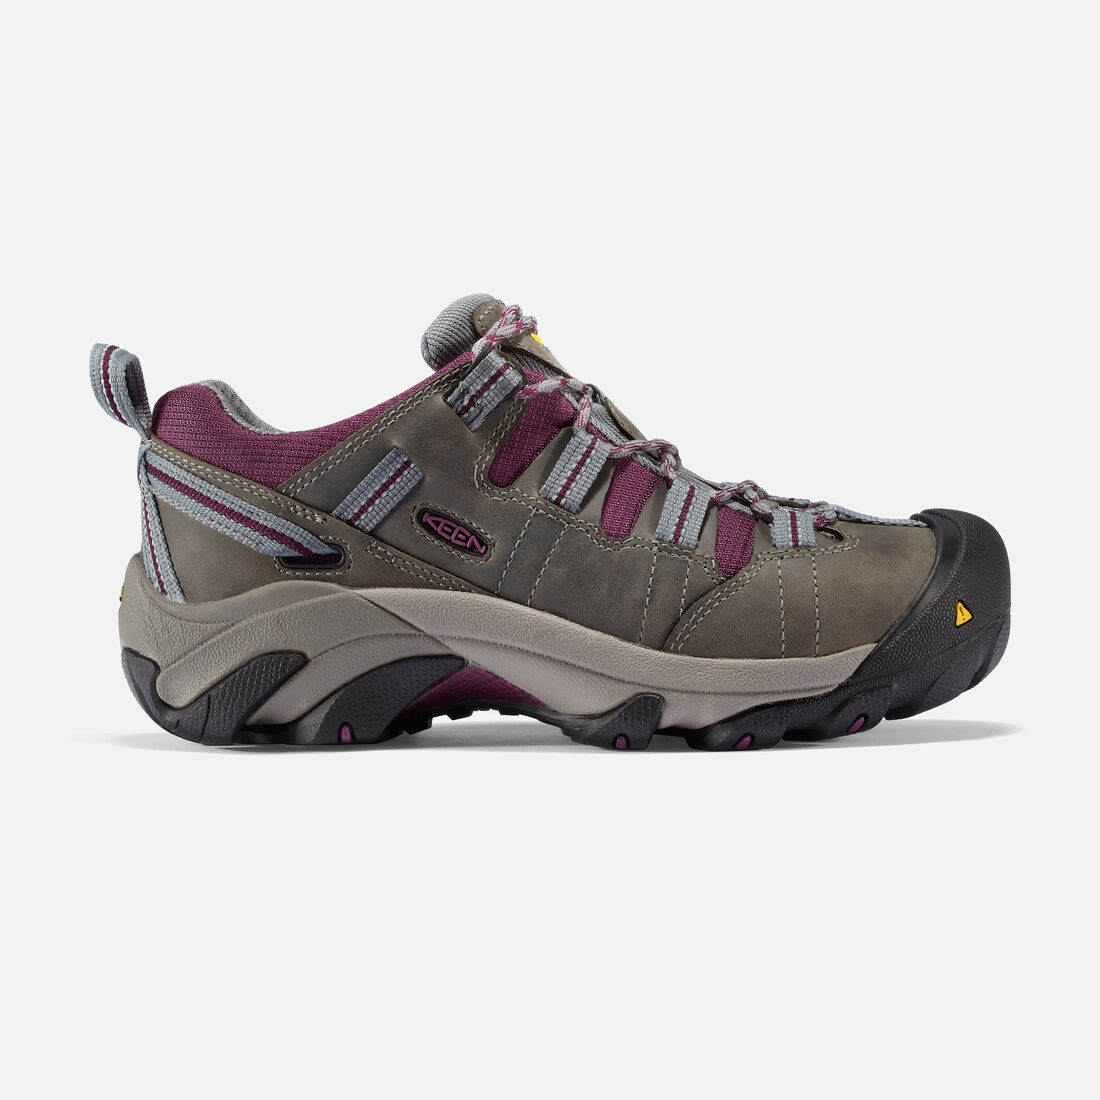 Women's Detroit Low (Steel Toe) in Monument/Amaranth - large view.